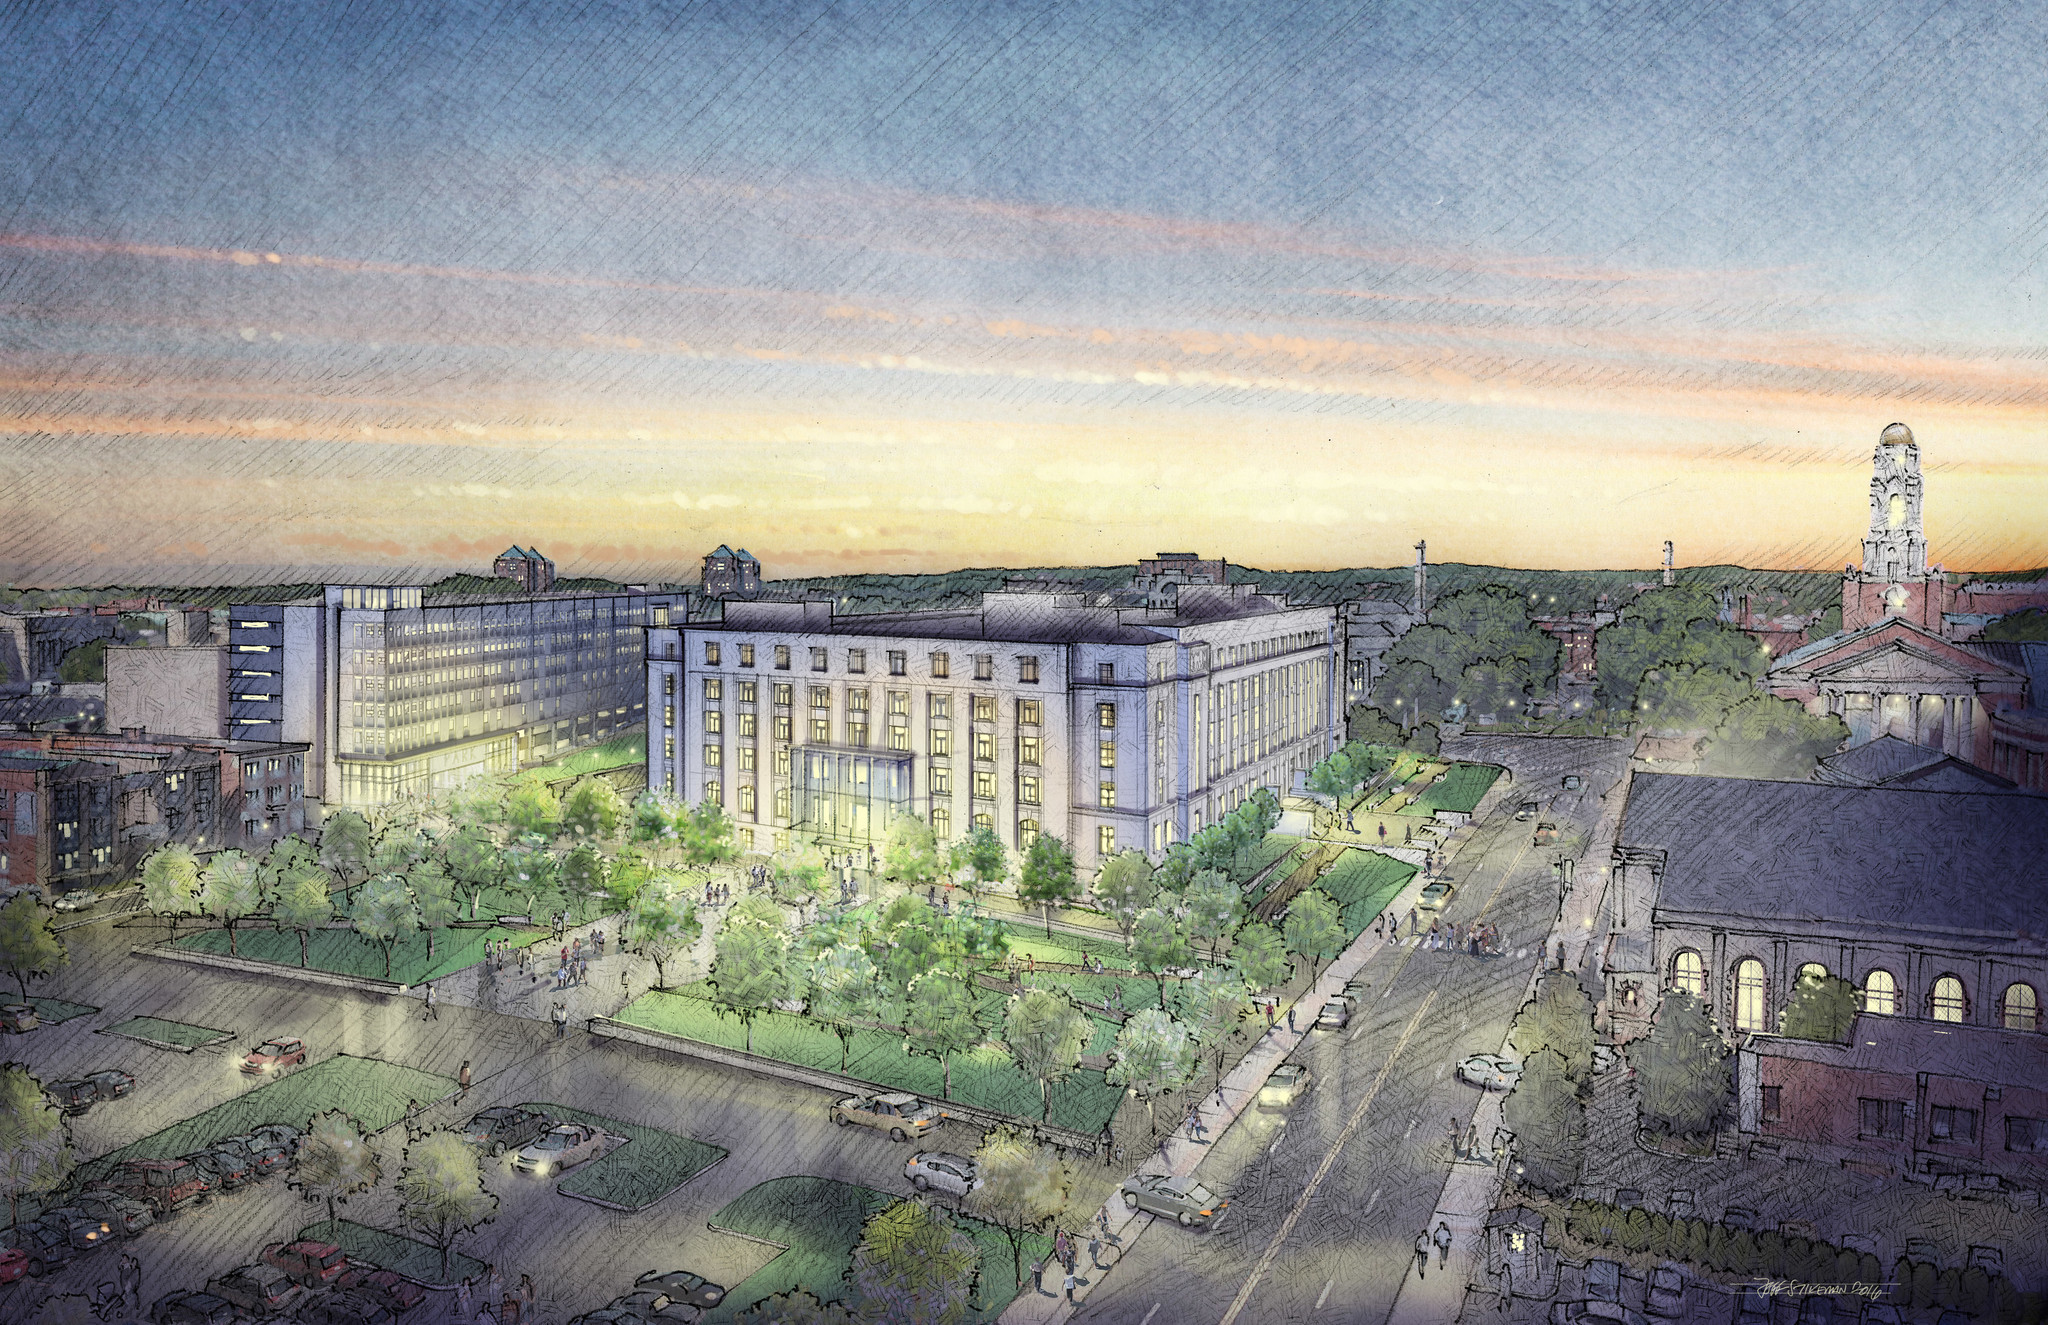 state office building renovation may spark neighborhood